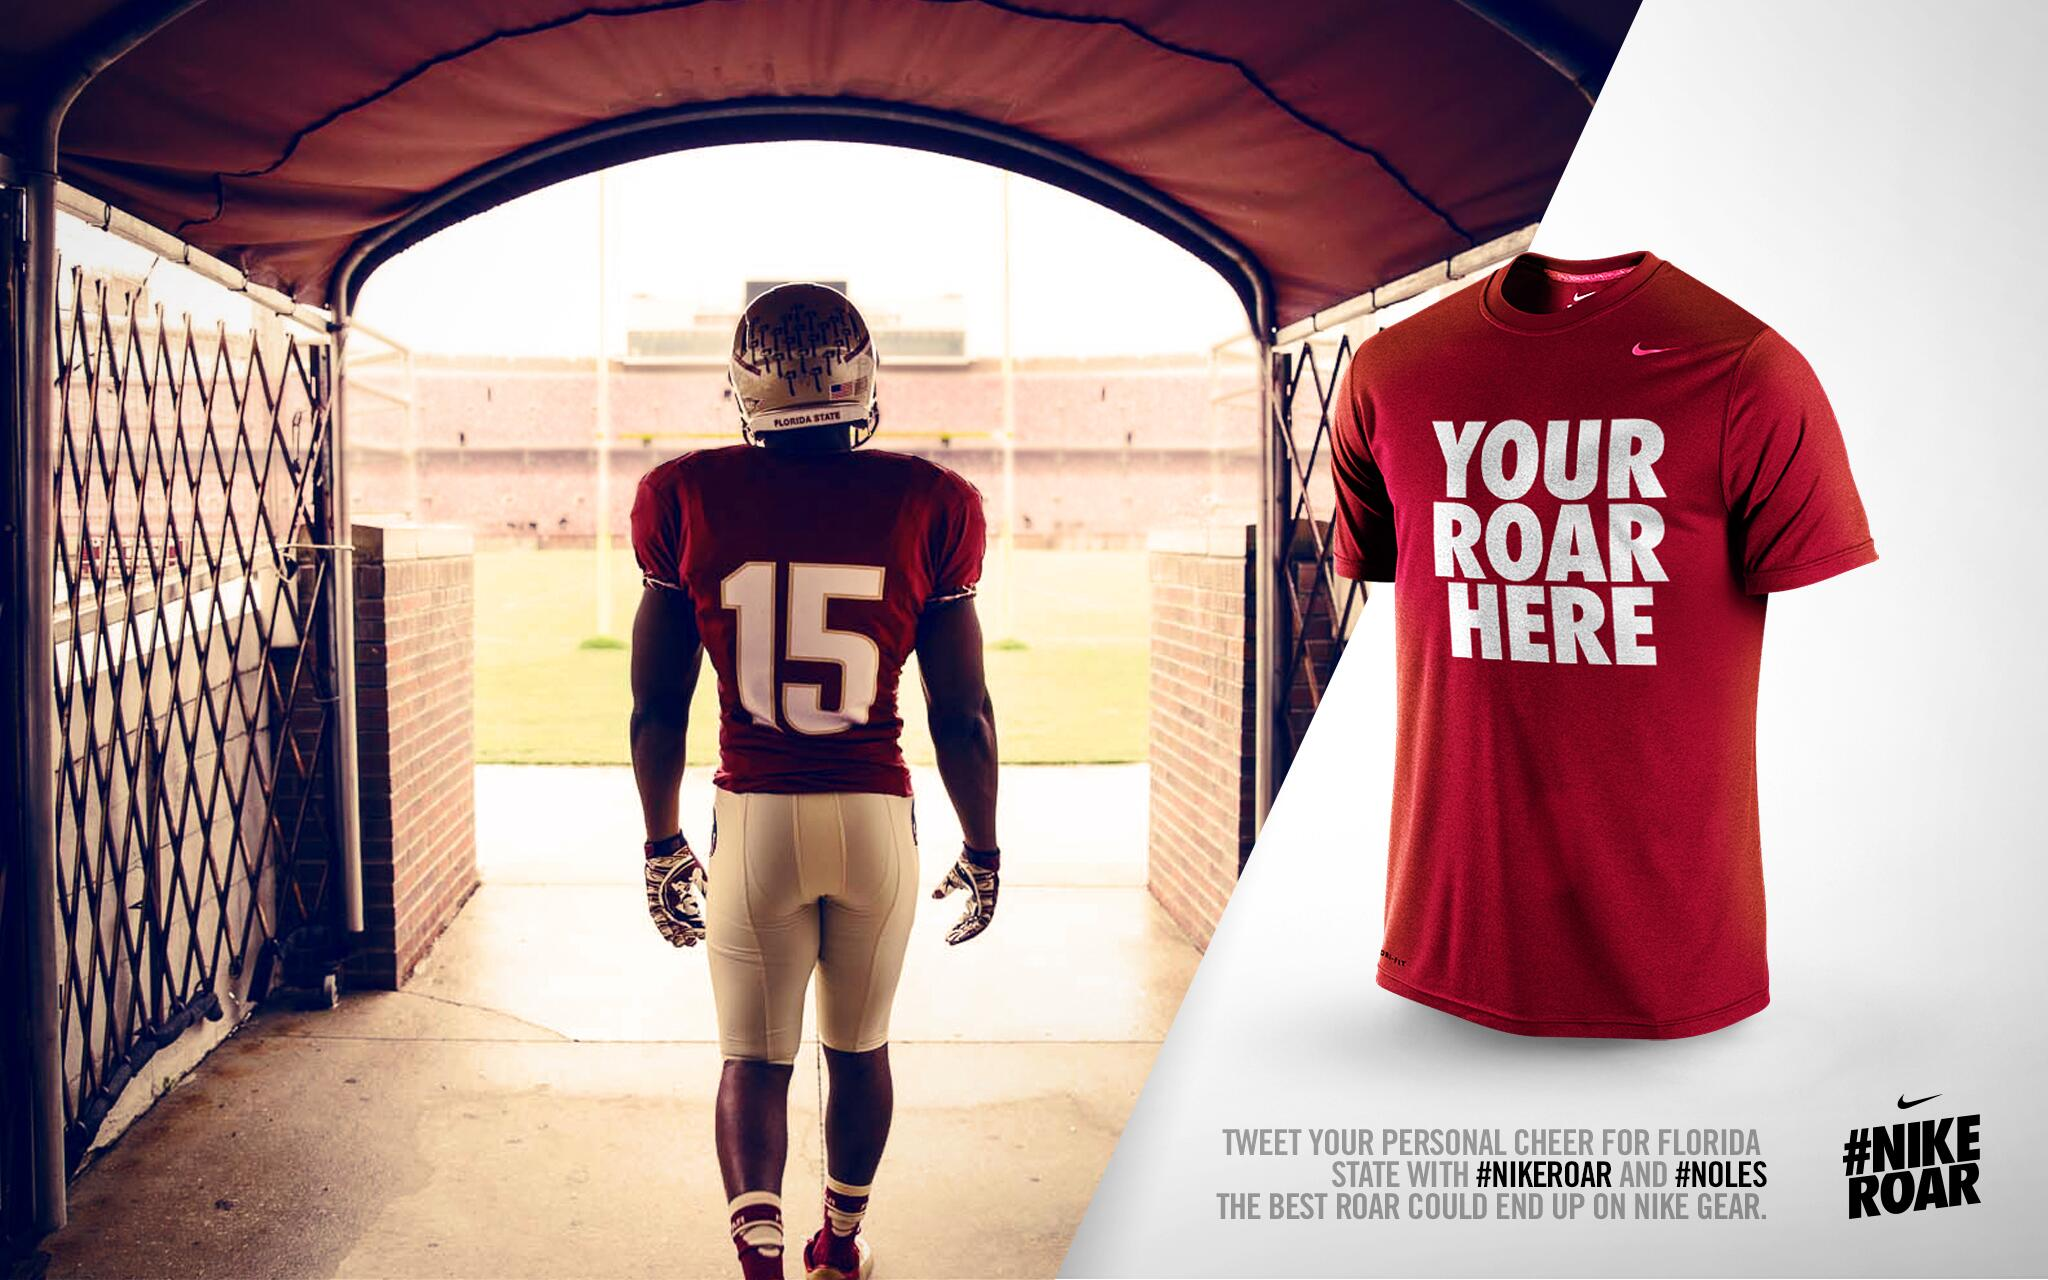 Now's your chance to get your personal cheer on official Nike FSU gear! Tweet your roar w/ #Noles and #NikeRoar today http://t.co/VsbootMXli